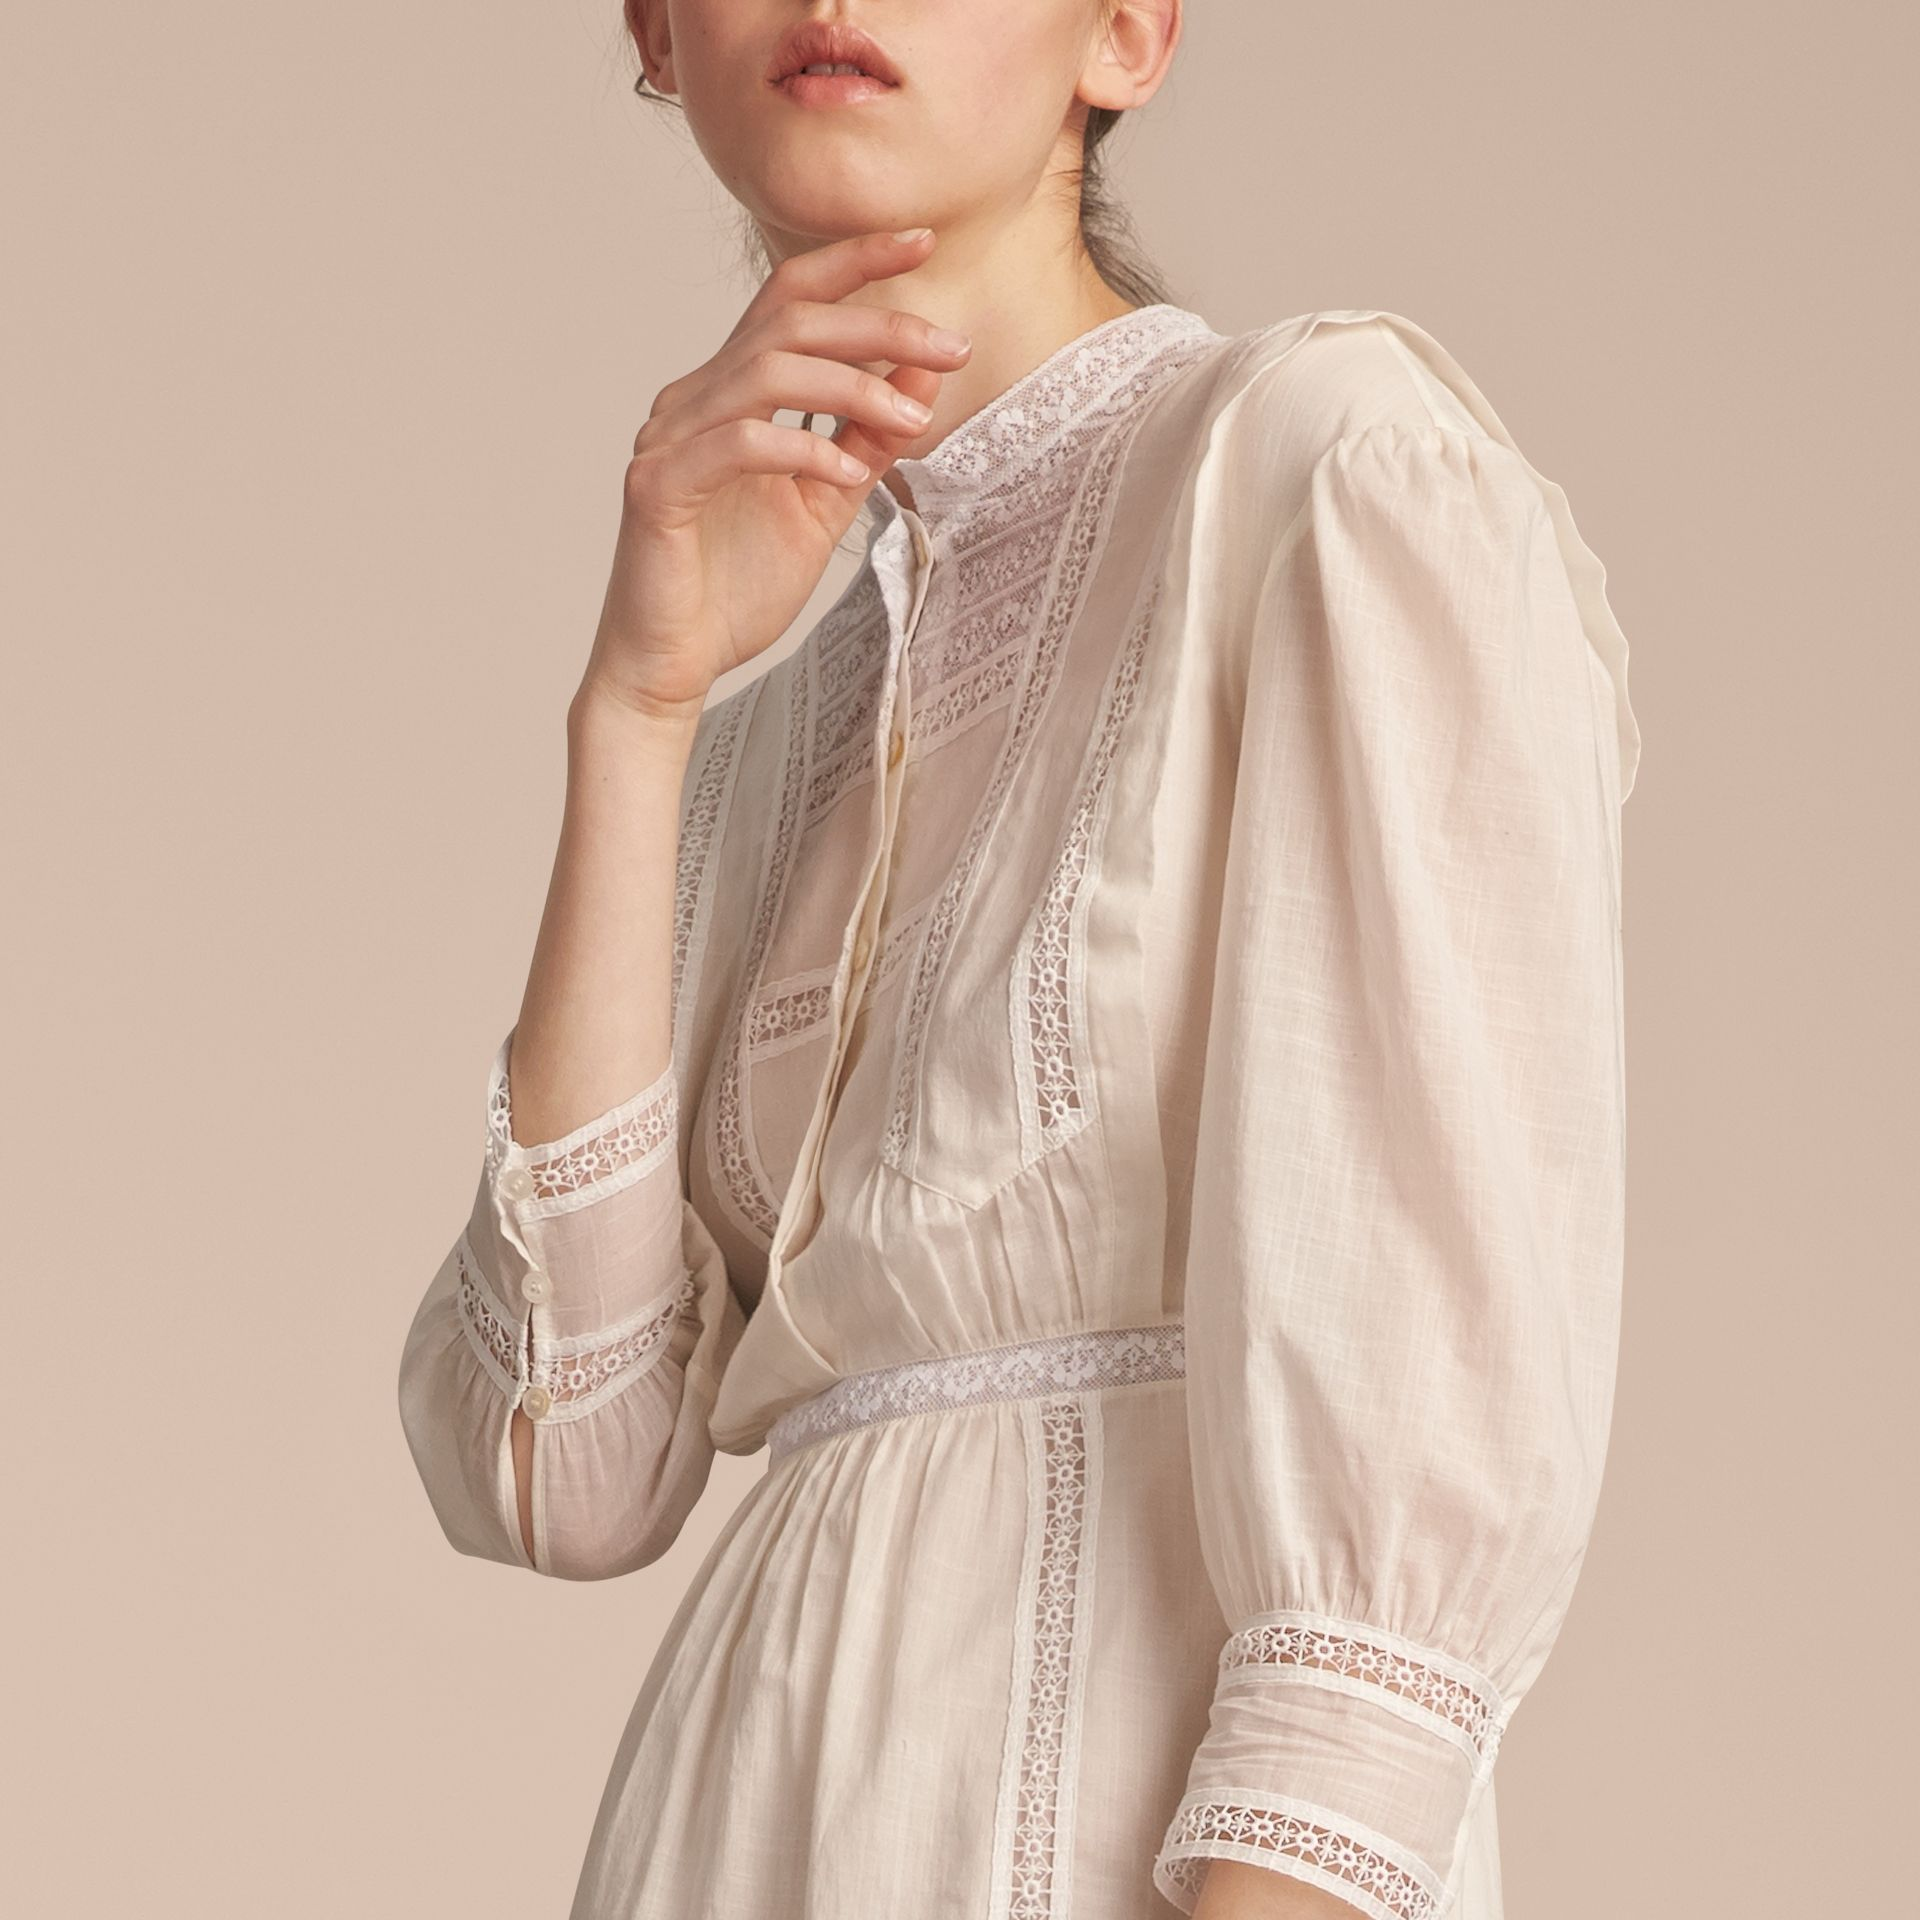 Lace Detail Cotton Voile Dress in Natural White - Women | Burberry - gallery image 5